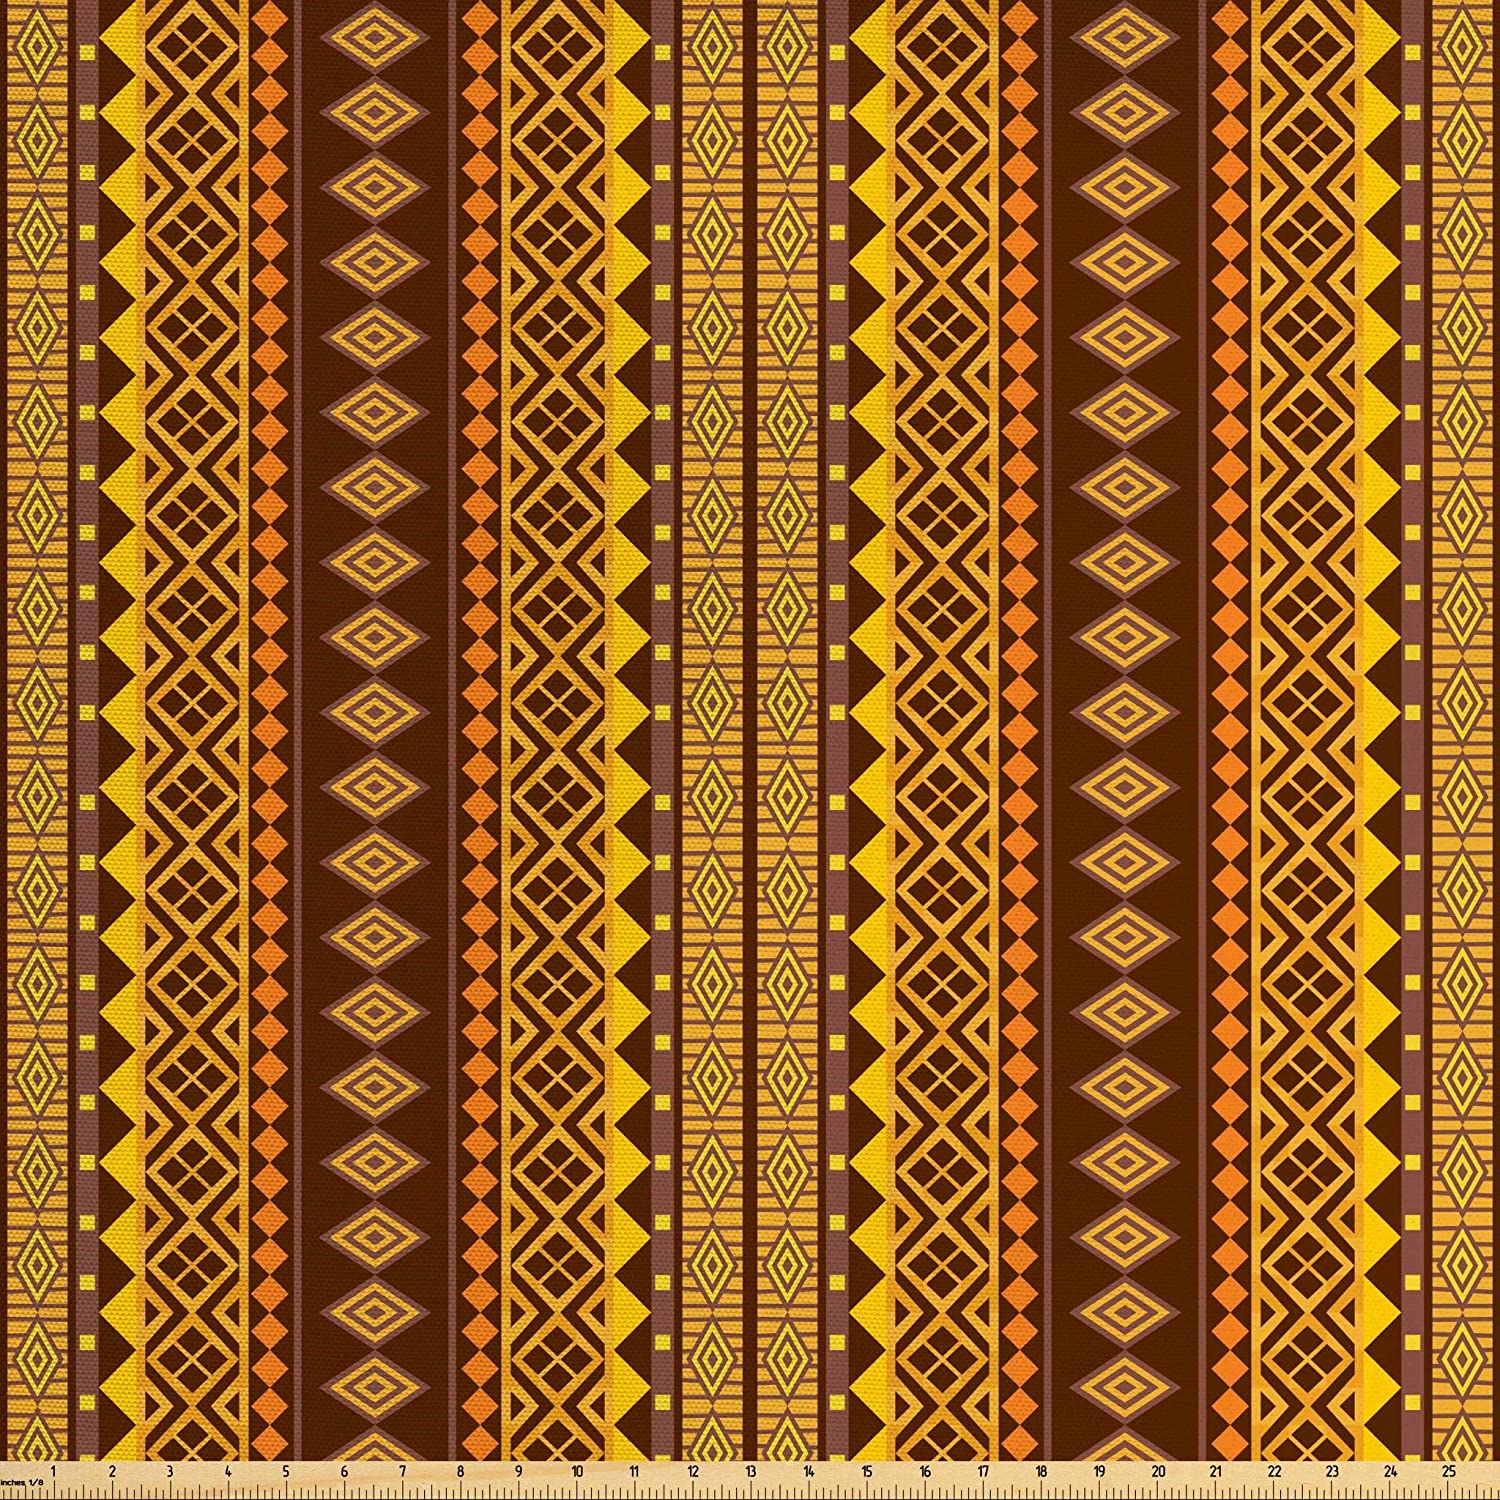 Lunarable Yellow and Brown Fabric by The Yard, Folk Hippie Motifs Triangles Geometric Print, Decorative Fabric for Upholstery and Home Accents, 3 Yards, Chestnut Brown